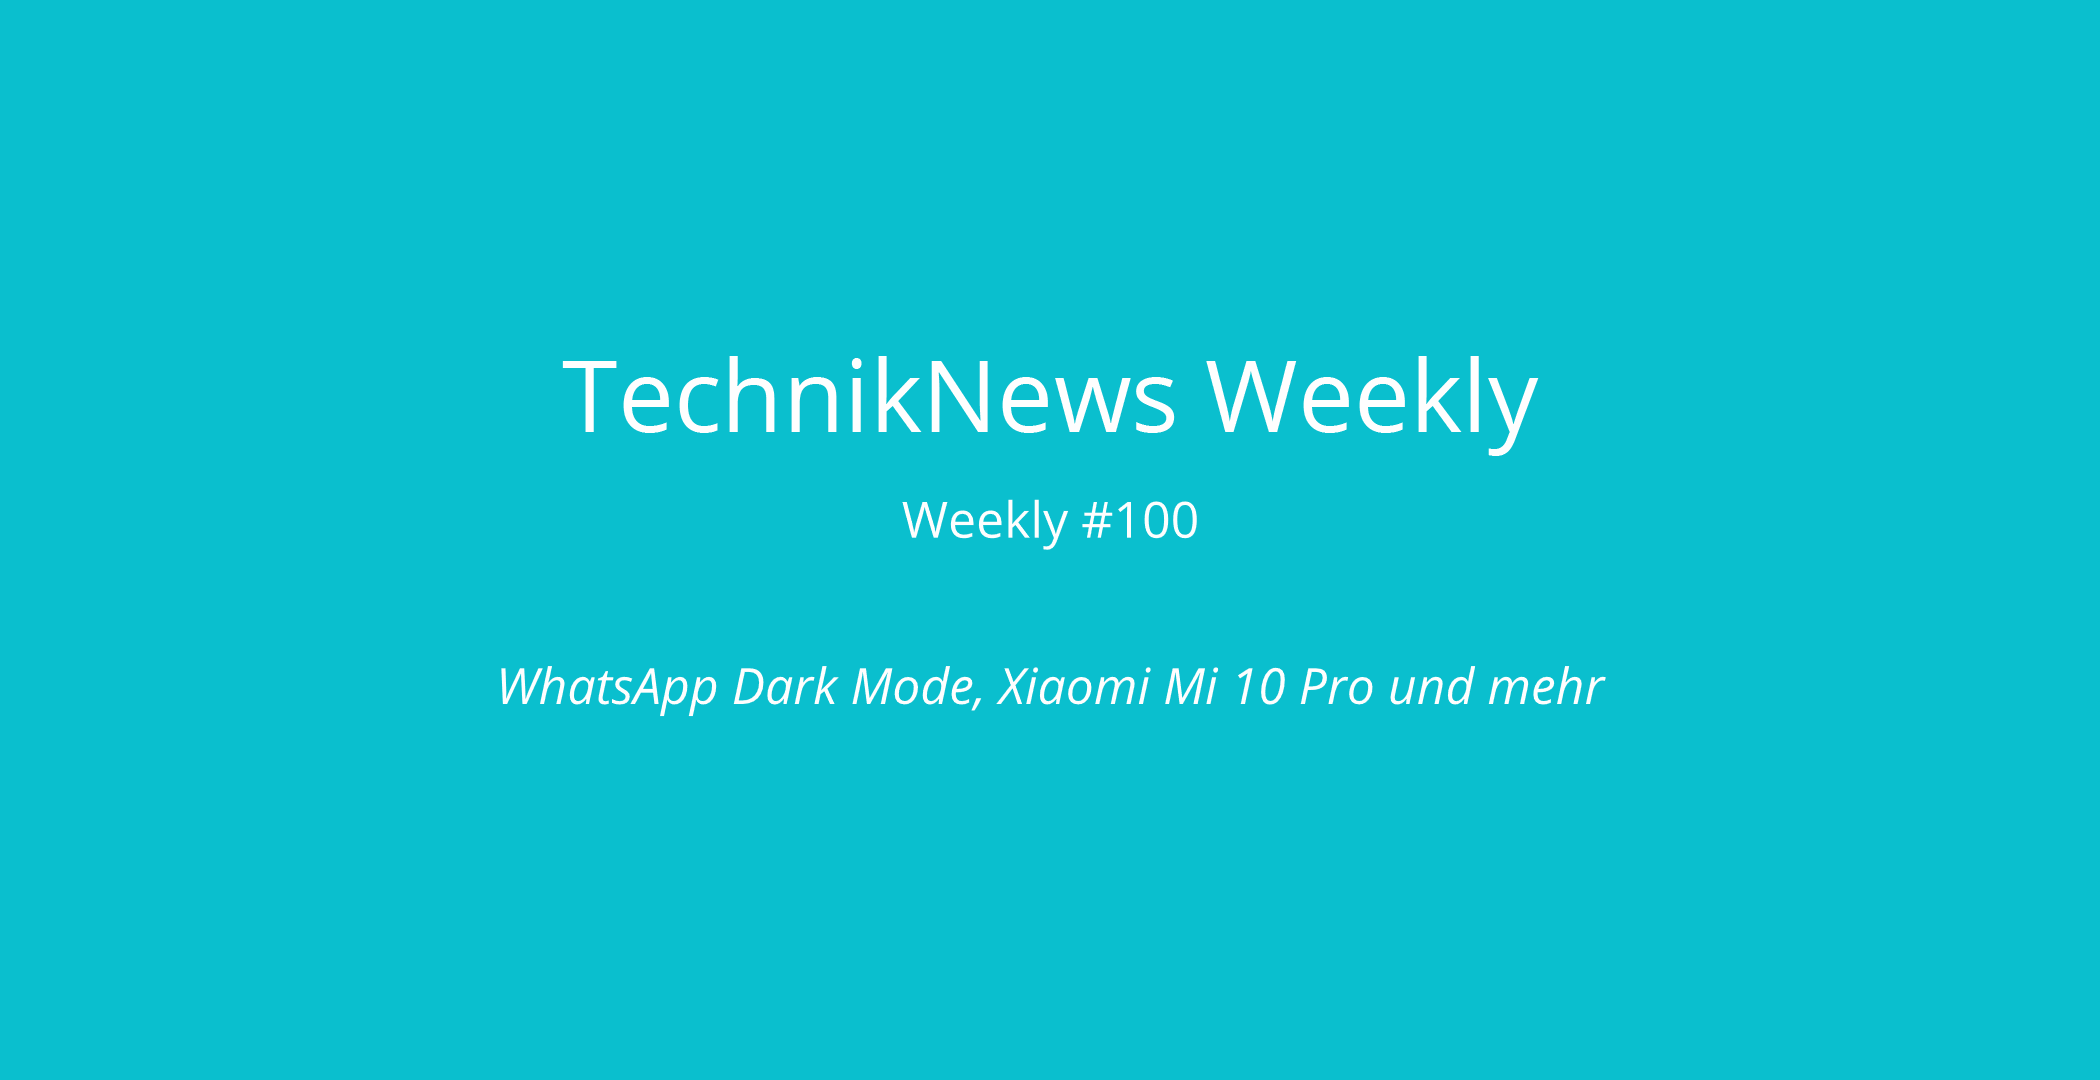 TechnikNews Weekly #100: WhatsApp Dark Mode, Xiaomi Mi 10 Pro und mehr